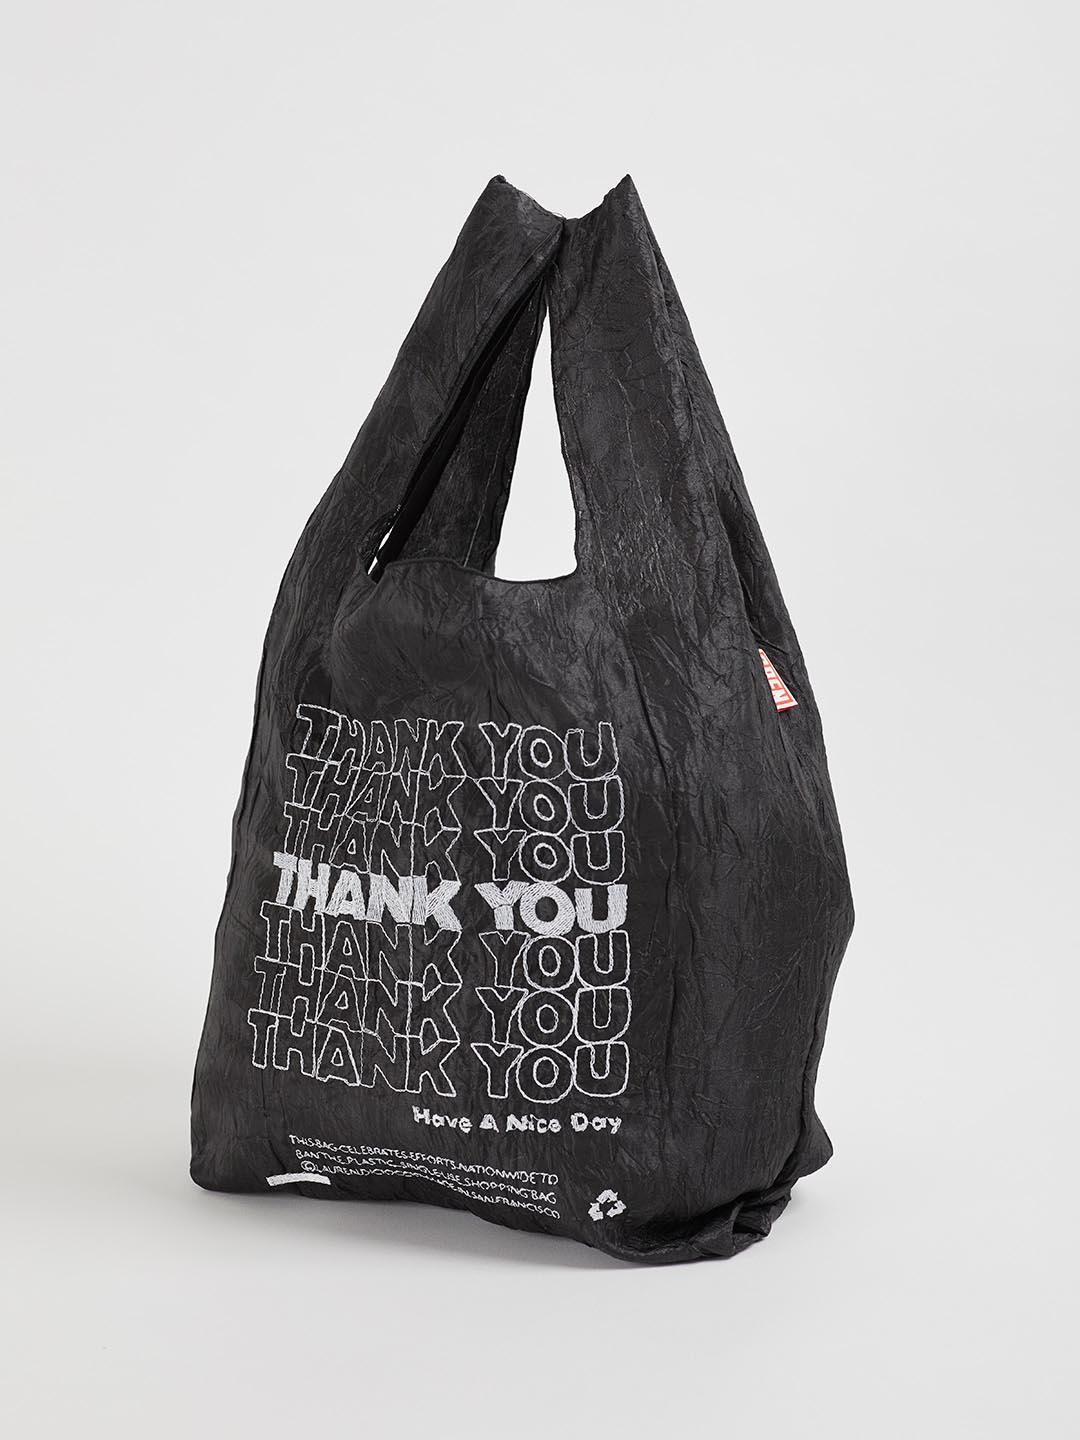 Thank You Tote - Thank You Black【SPECIAL Edition】